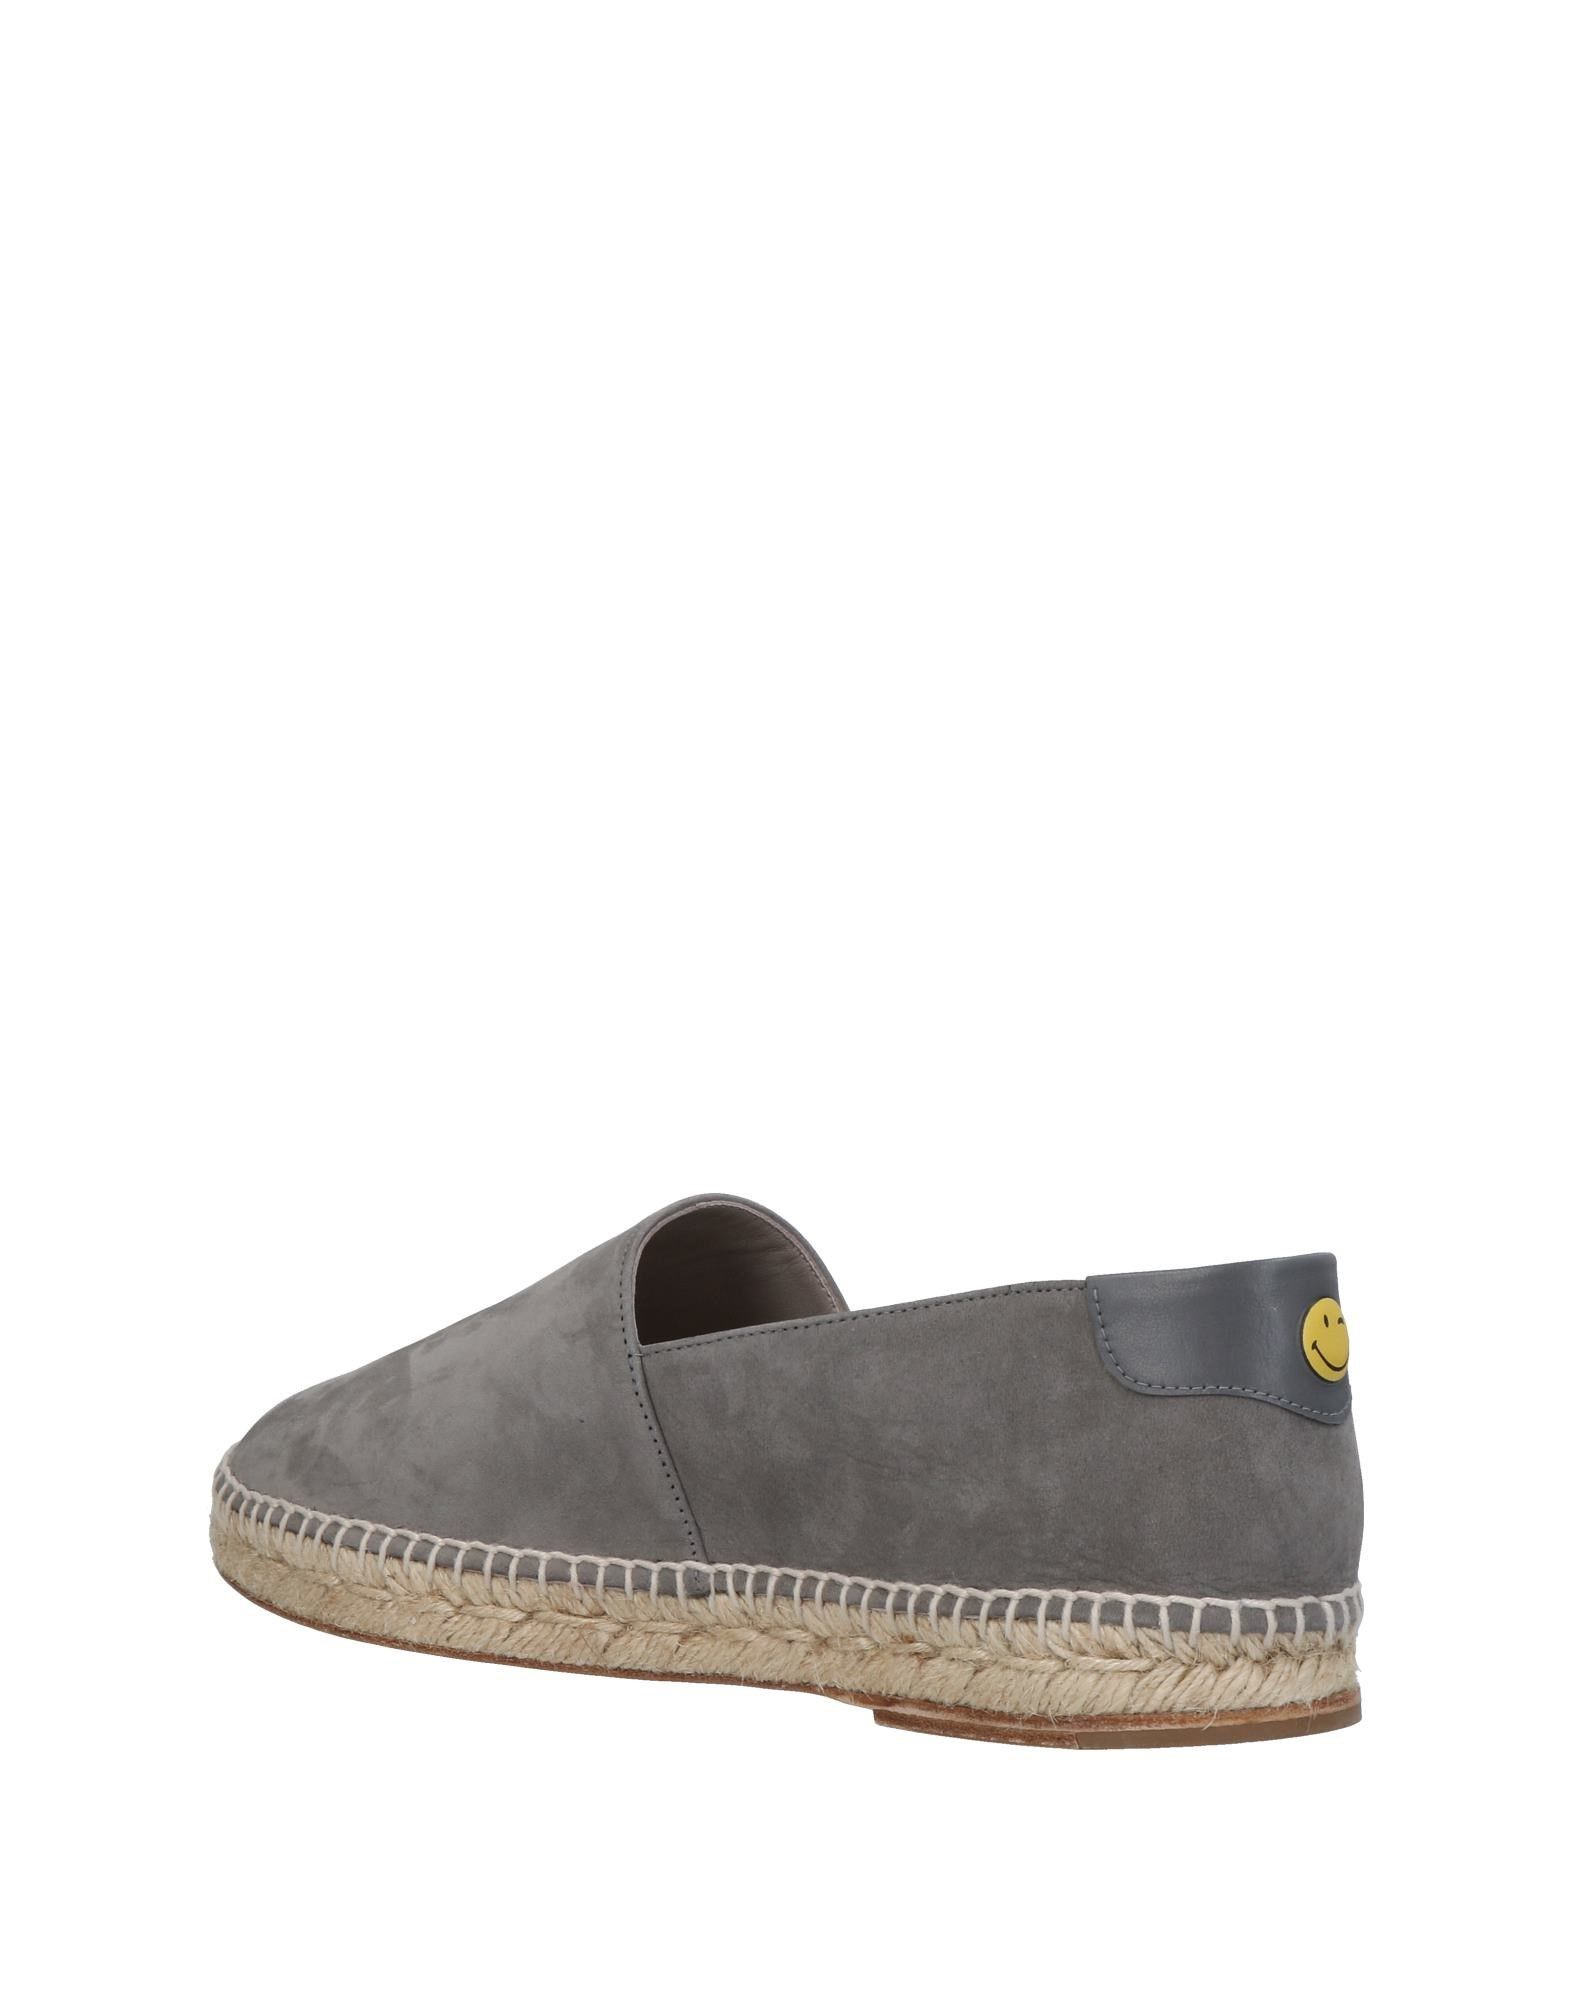 Espadrilles Anya Hindmarch Homme - Espadrilles Anya Hindmarch sur